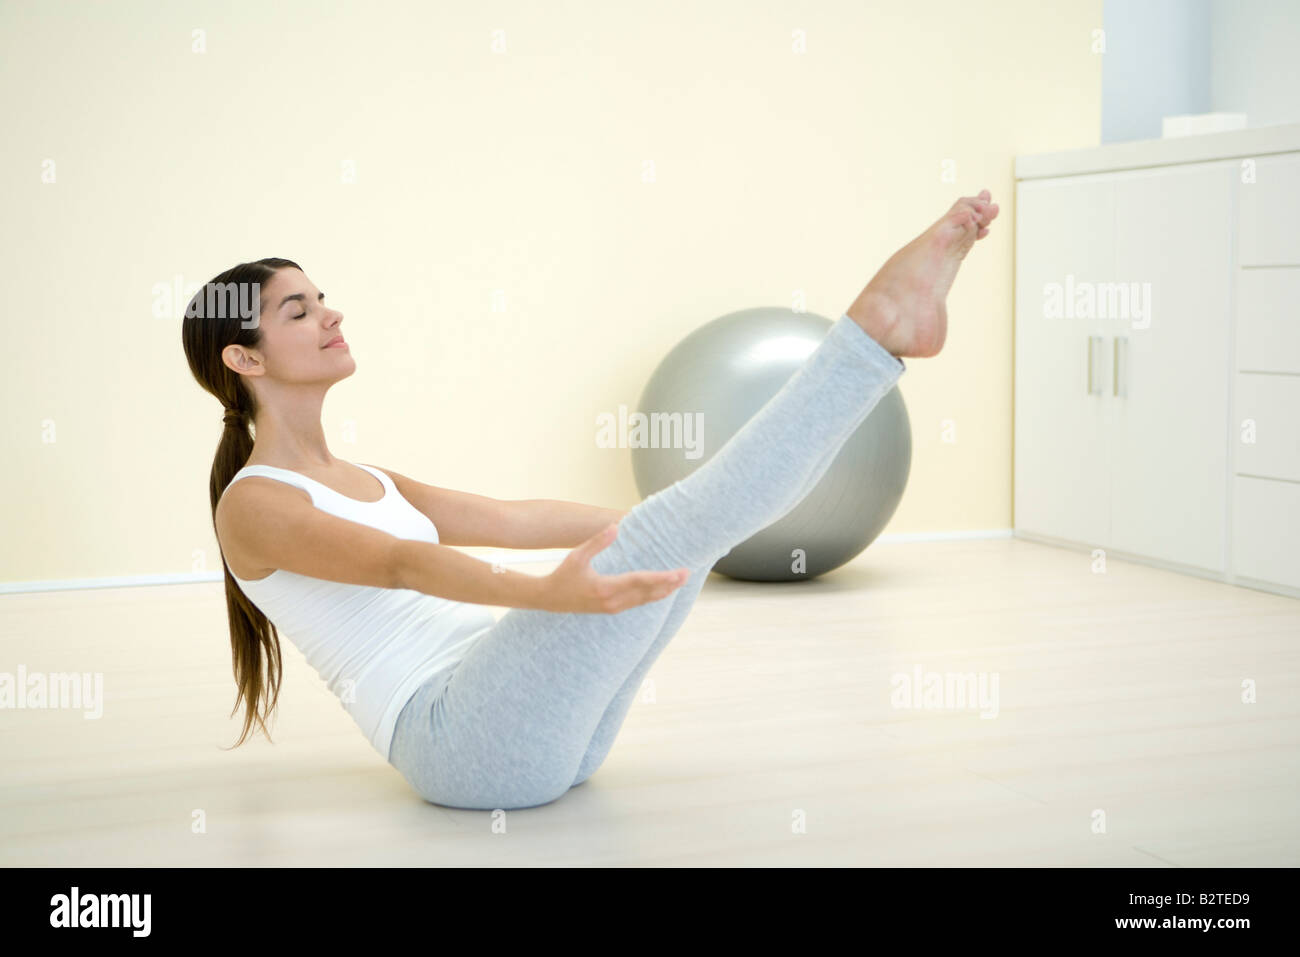 Woman performing boat pose, side view - Stock Image